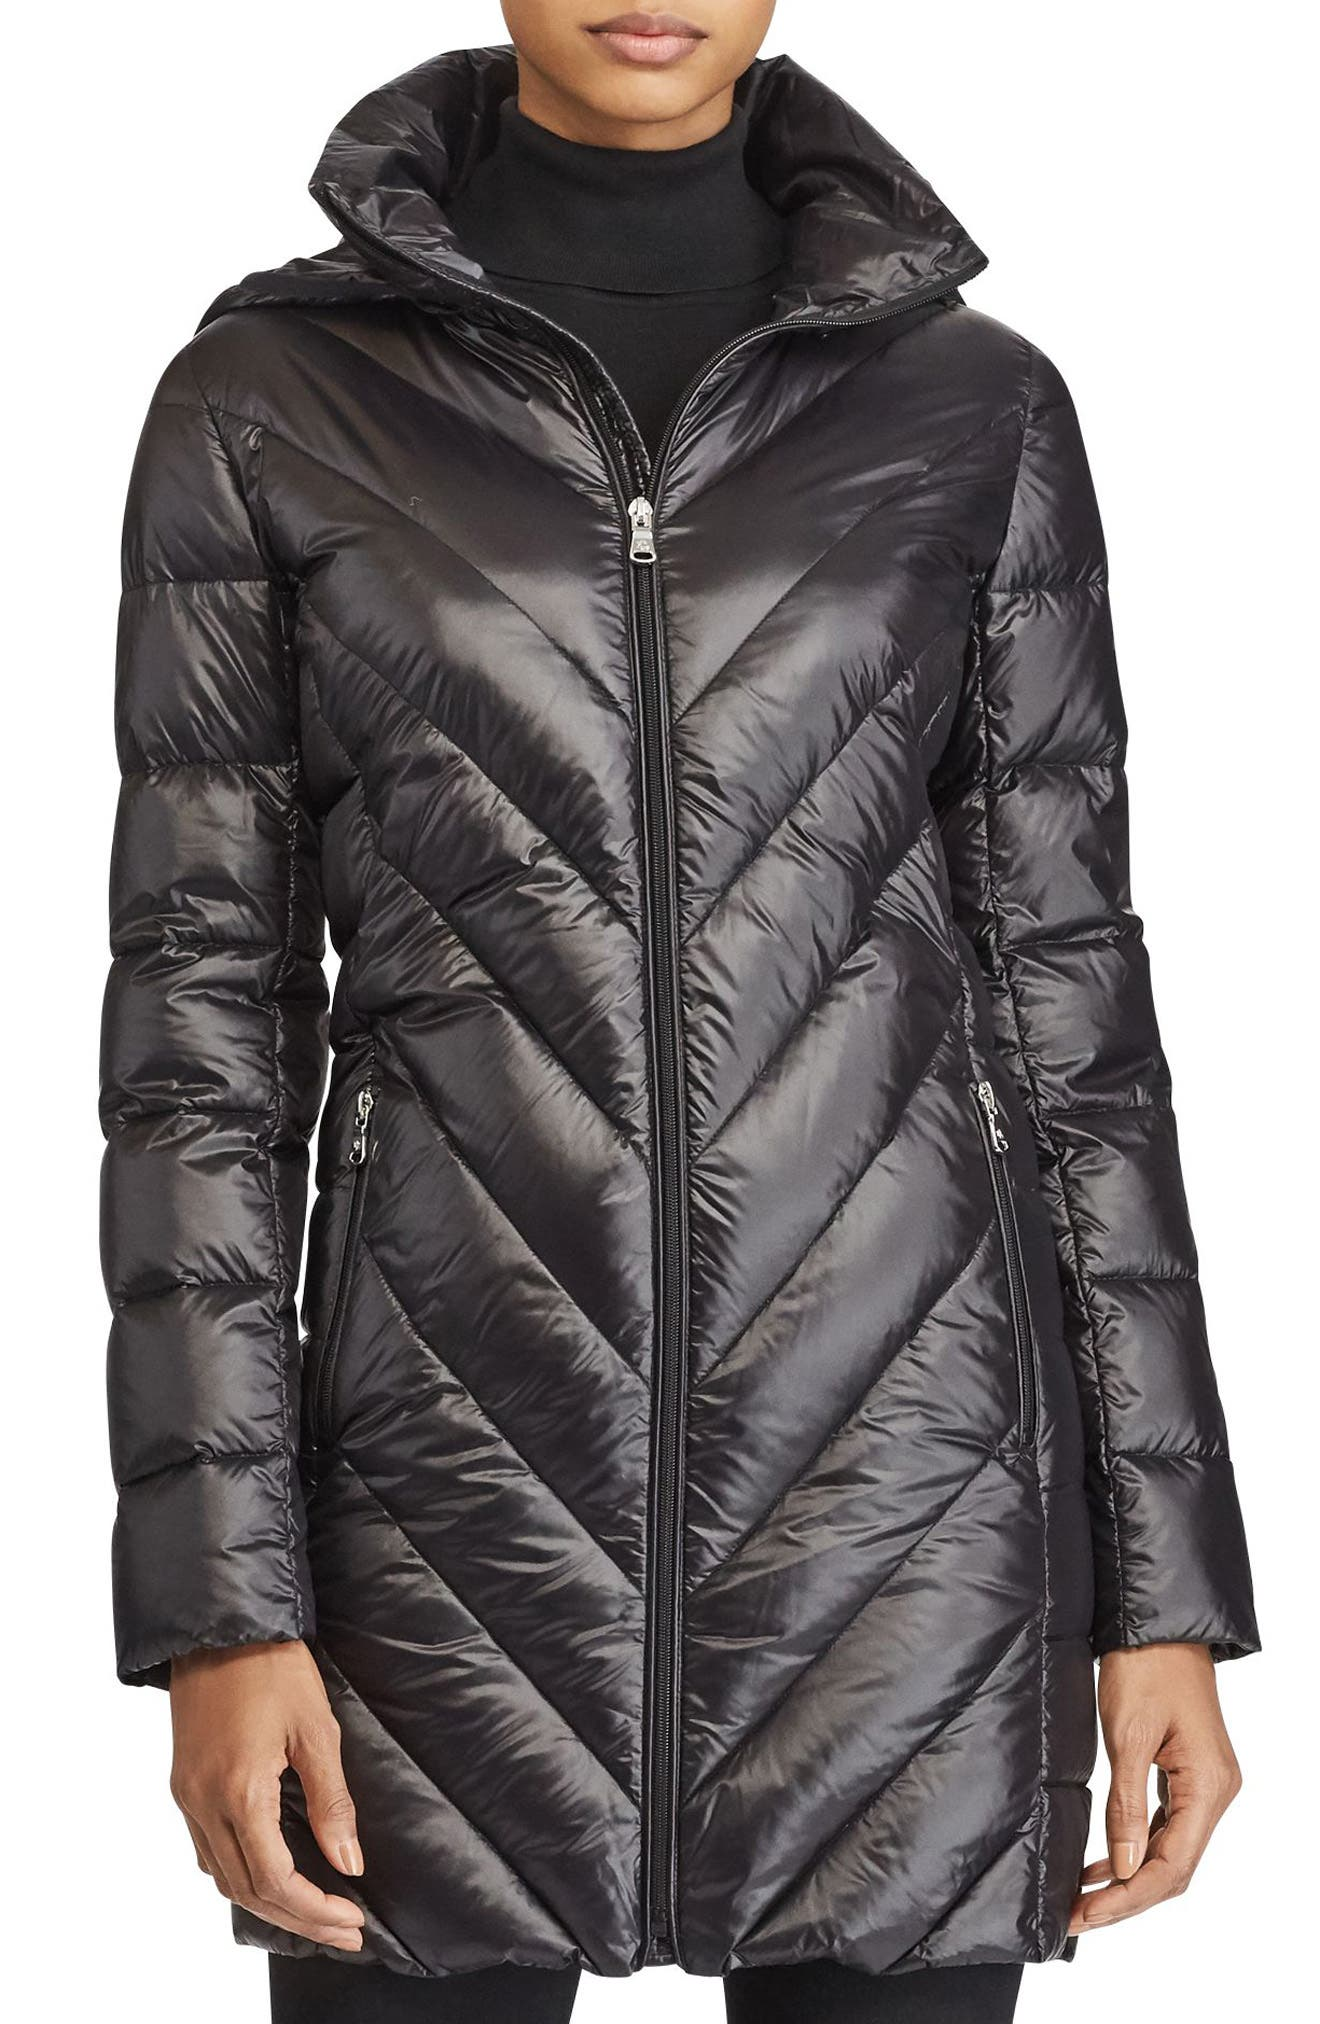 Chevron Quilted Down Jacket,                             Main thumbnail 1, color,                             001